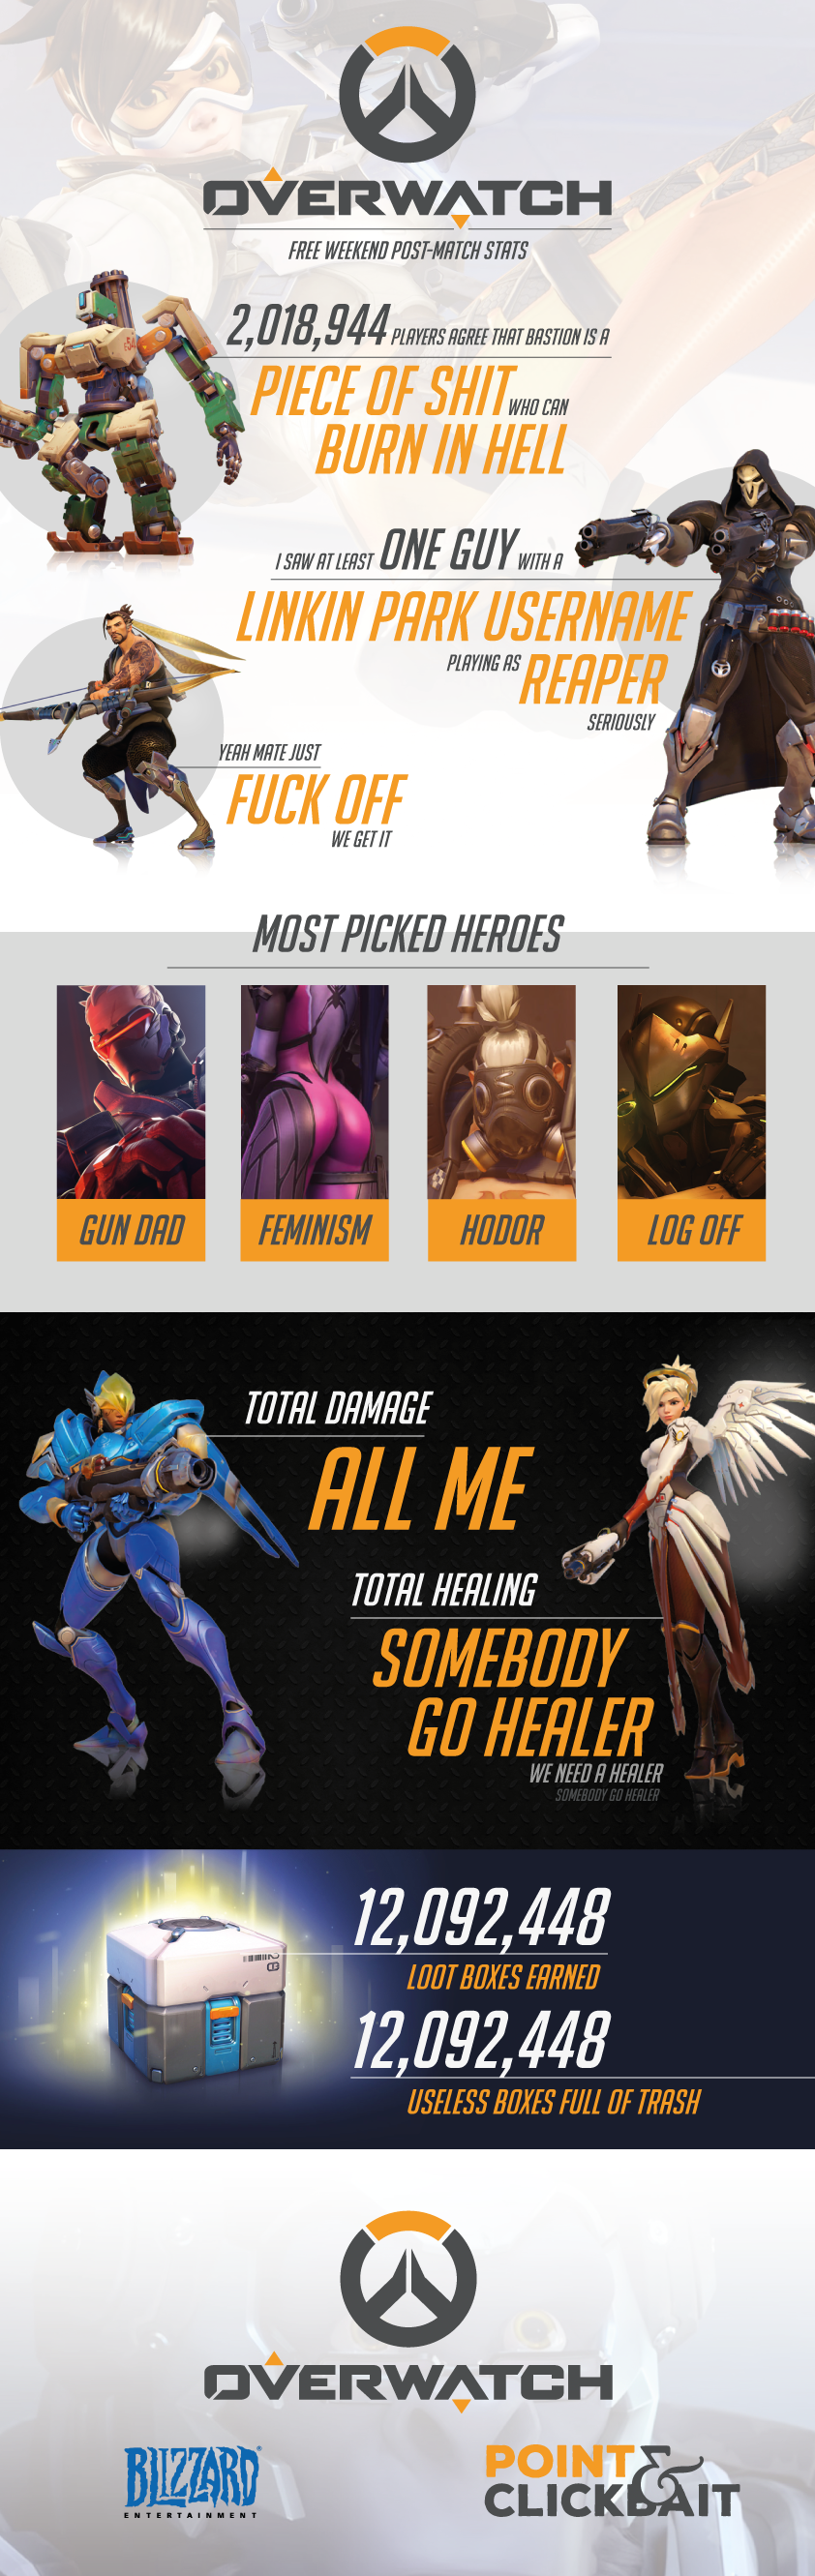 overwatch-free-weekend-infographic